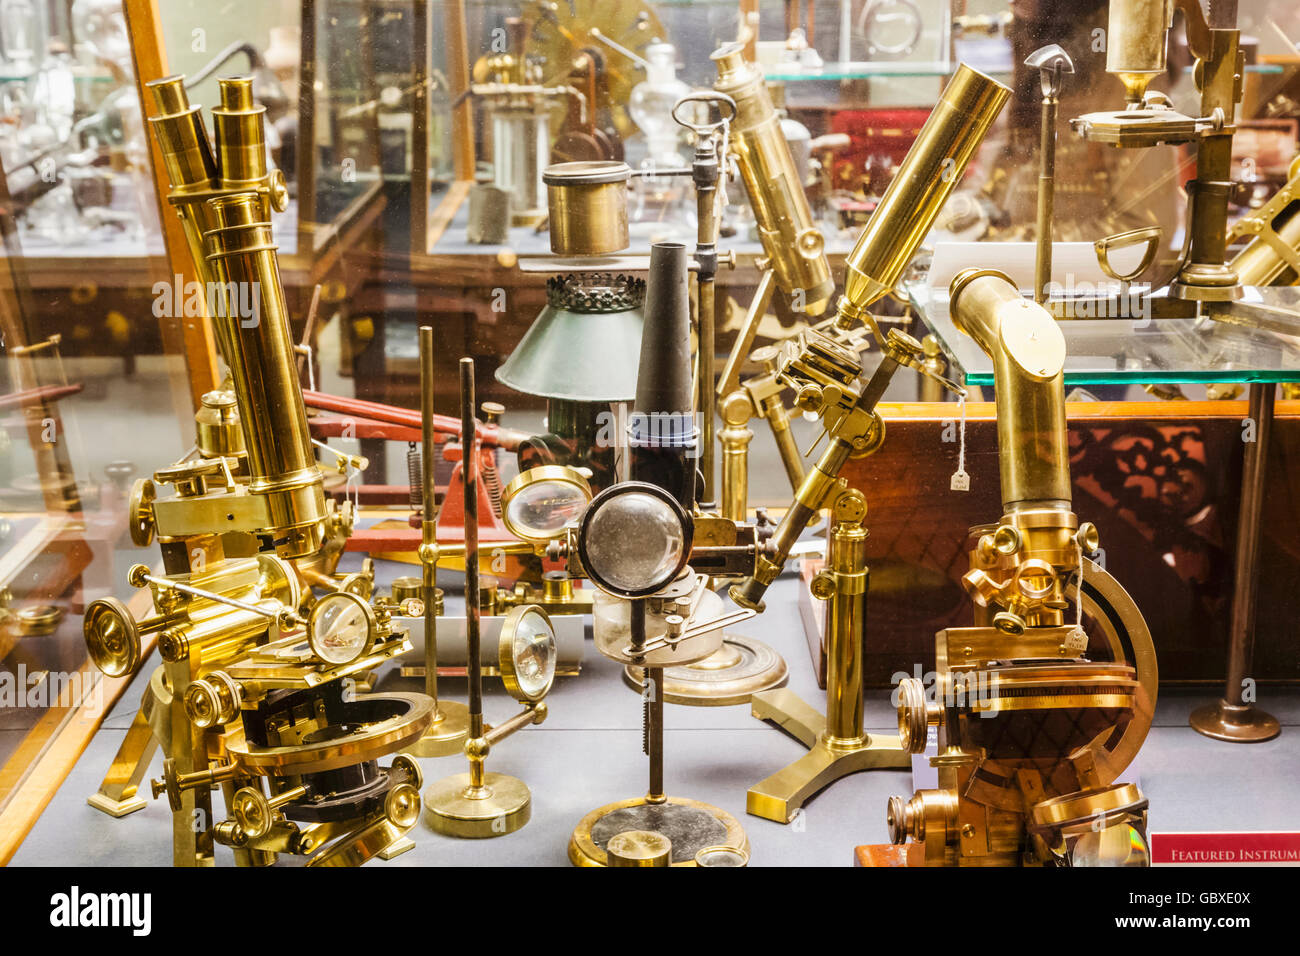 England, Oxfordshire, Oxford, Museum of the History of Science, Display of  Historical Scientific Instruments